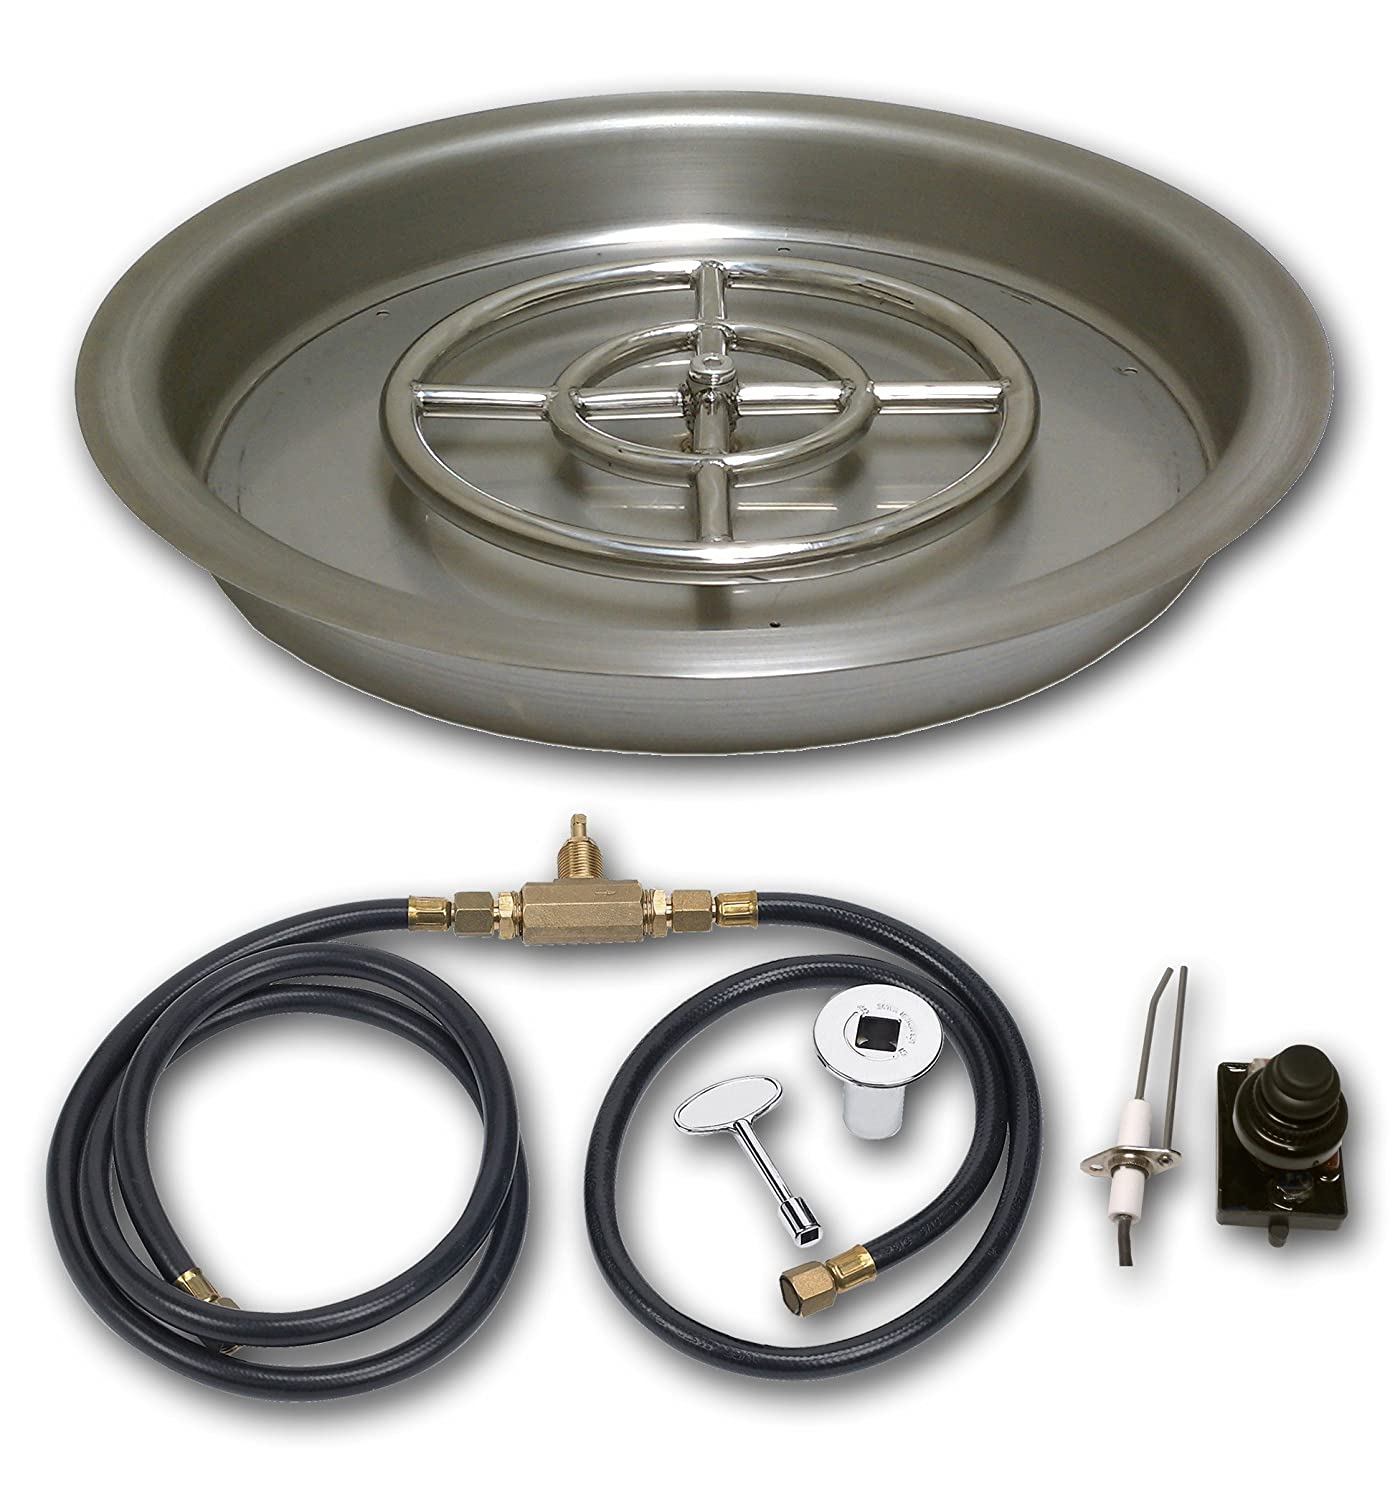 Amazon.com : American Fireglass Spark Ignition Fire Pit Kit  (SS-RSPKIT-N-19), Round Bowl Pan, Natural Gas, 19-Inch : Garden & Outdoor - Amazon.com : American Fireglass Spark Ignition Fire Pit Kit (SS